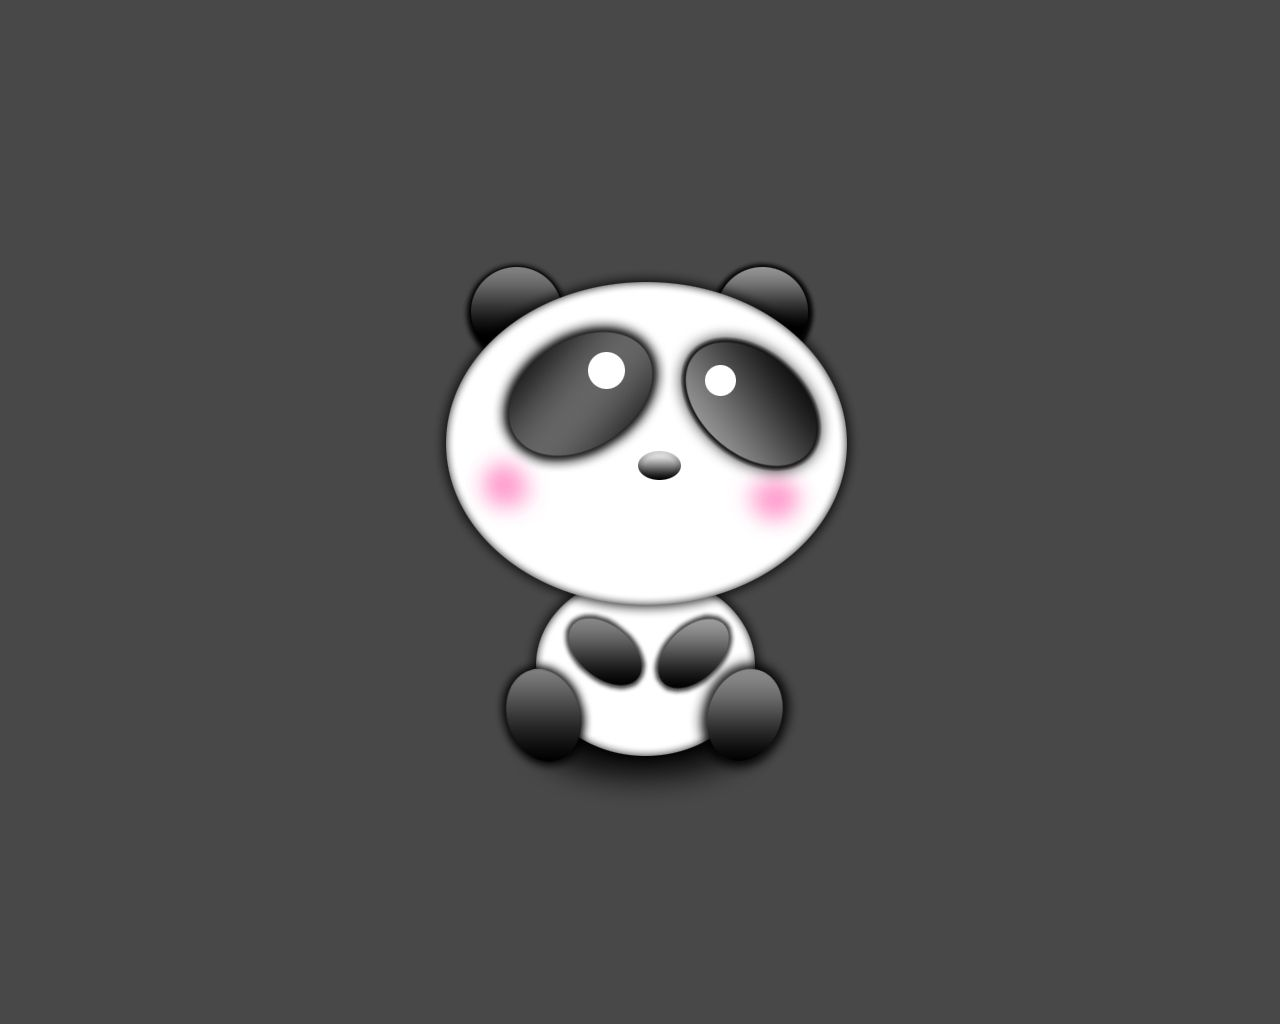 Simple Wallpaper Home Screen Panda - 11dc4cfcfd61377339ddc8b3bfa16c47  Pictures_82317.jpg